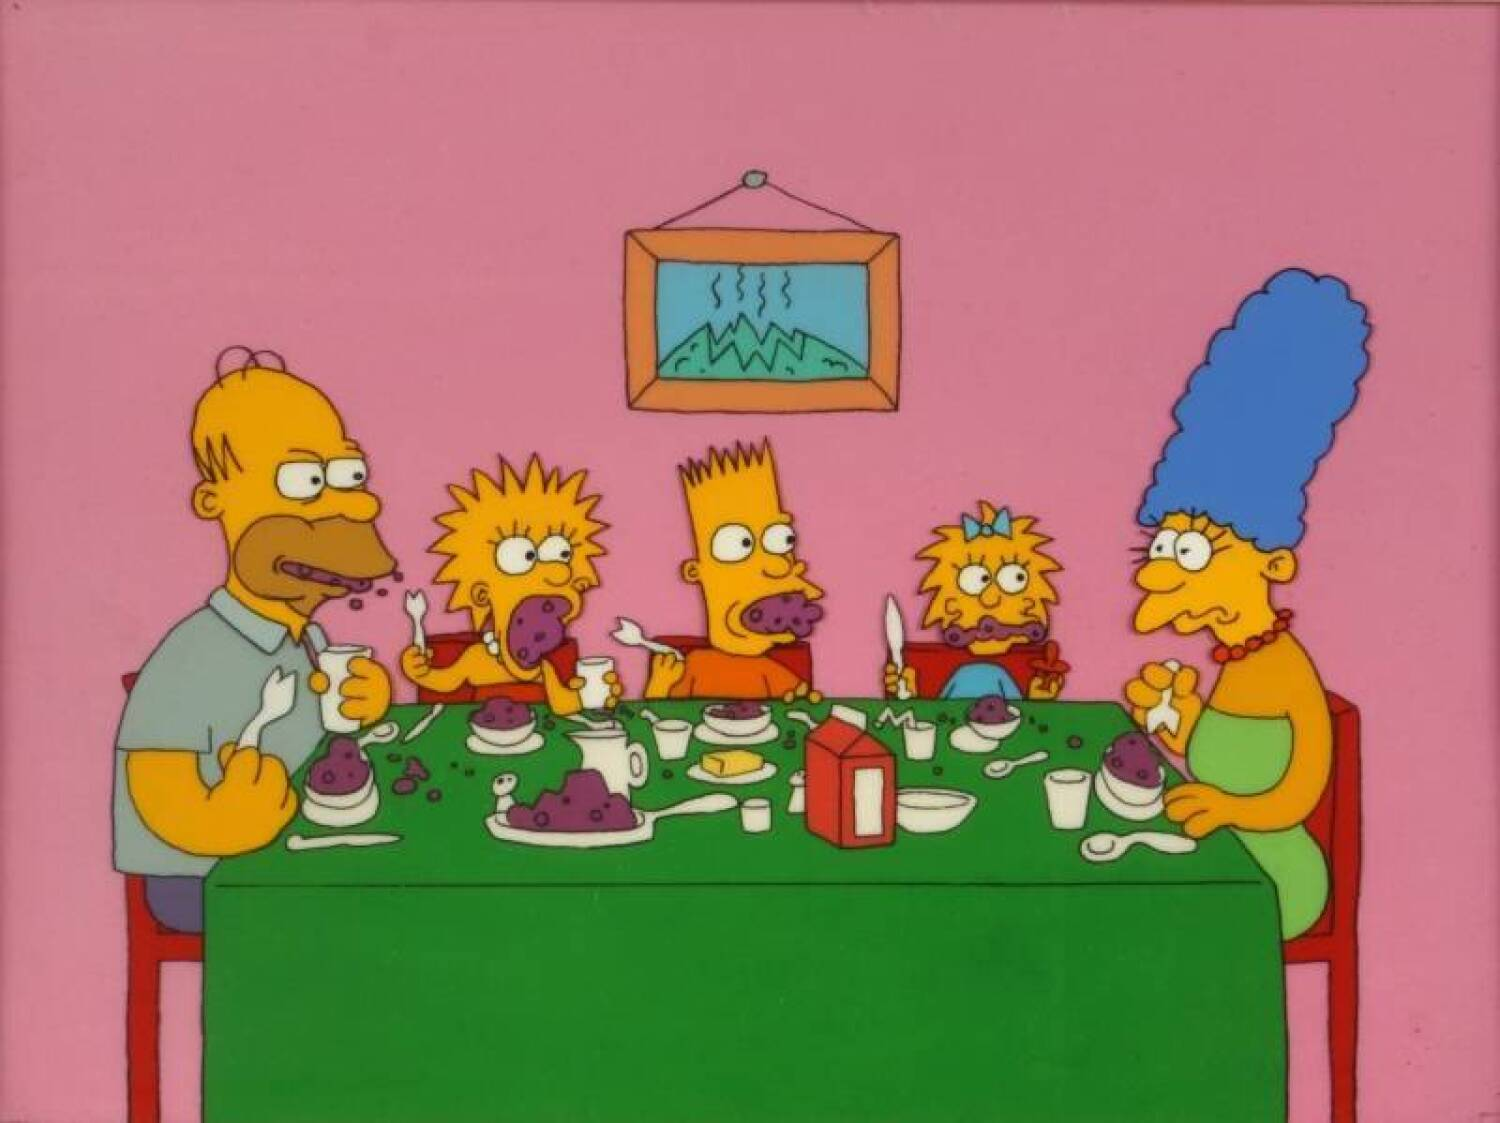 Simpsons Animation Cel From Quot Eating Dinner Quot Current